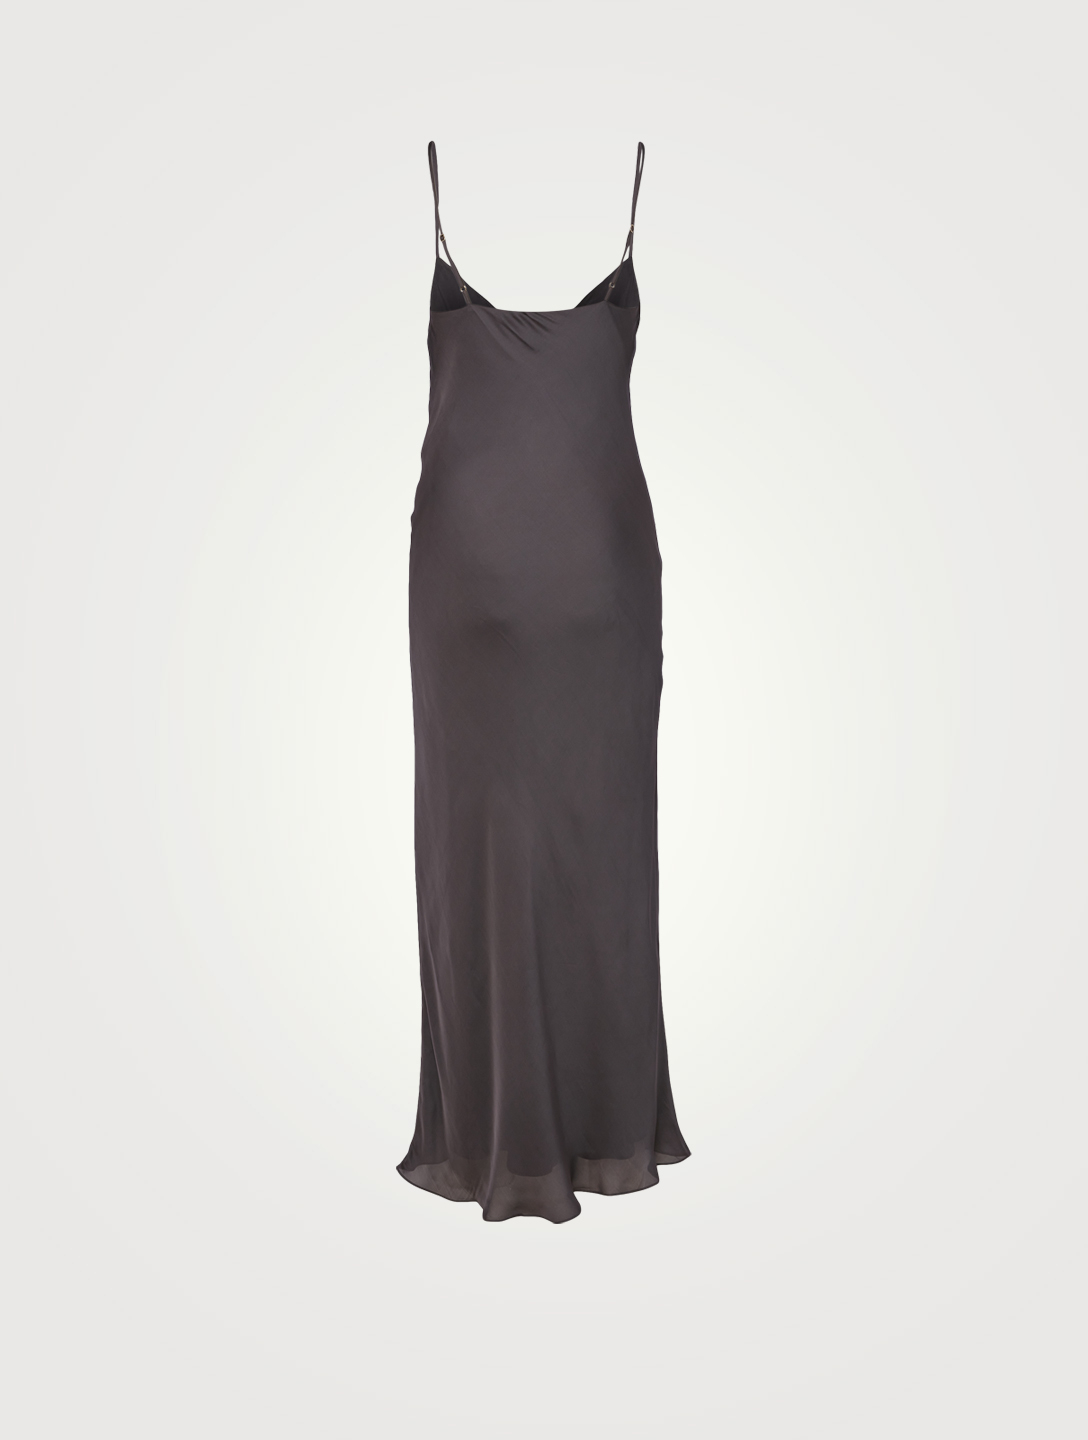 BIRGITTE HERSKIND Kira Silk-Blend Maxi Slip Dress Women's Black